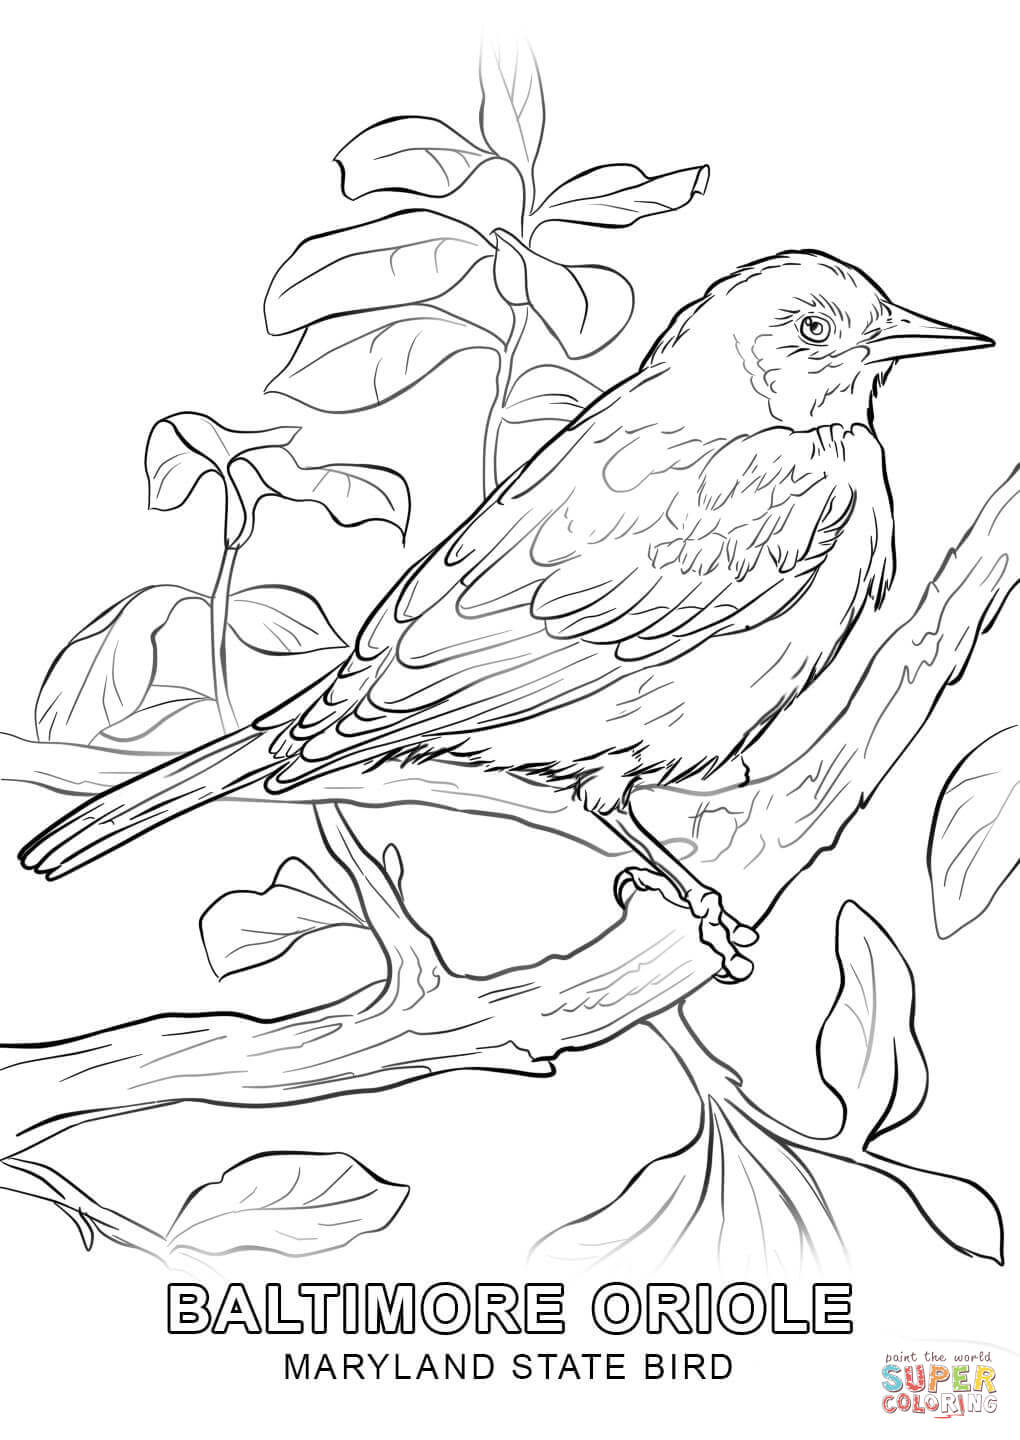 maryland state bird maryland state bird coloring page coloring pages bird maryland state